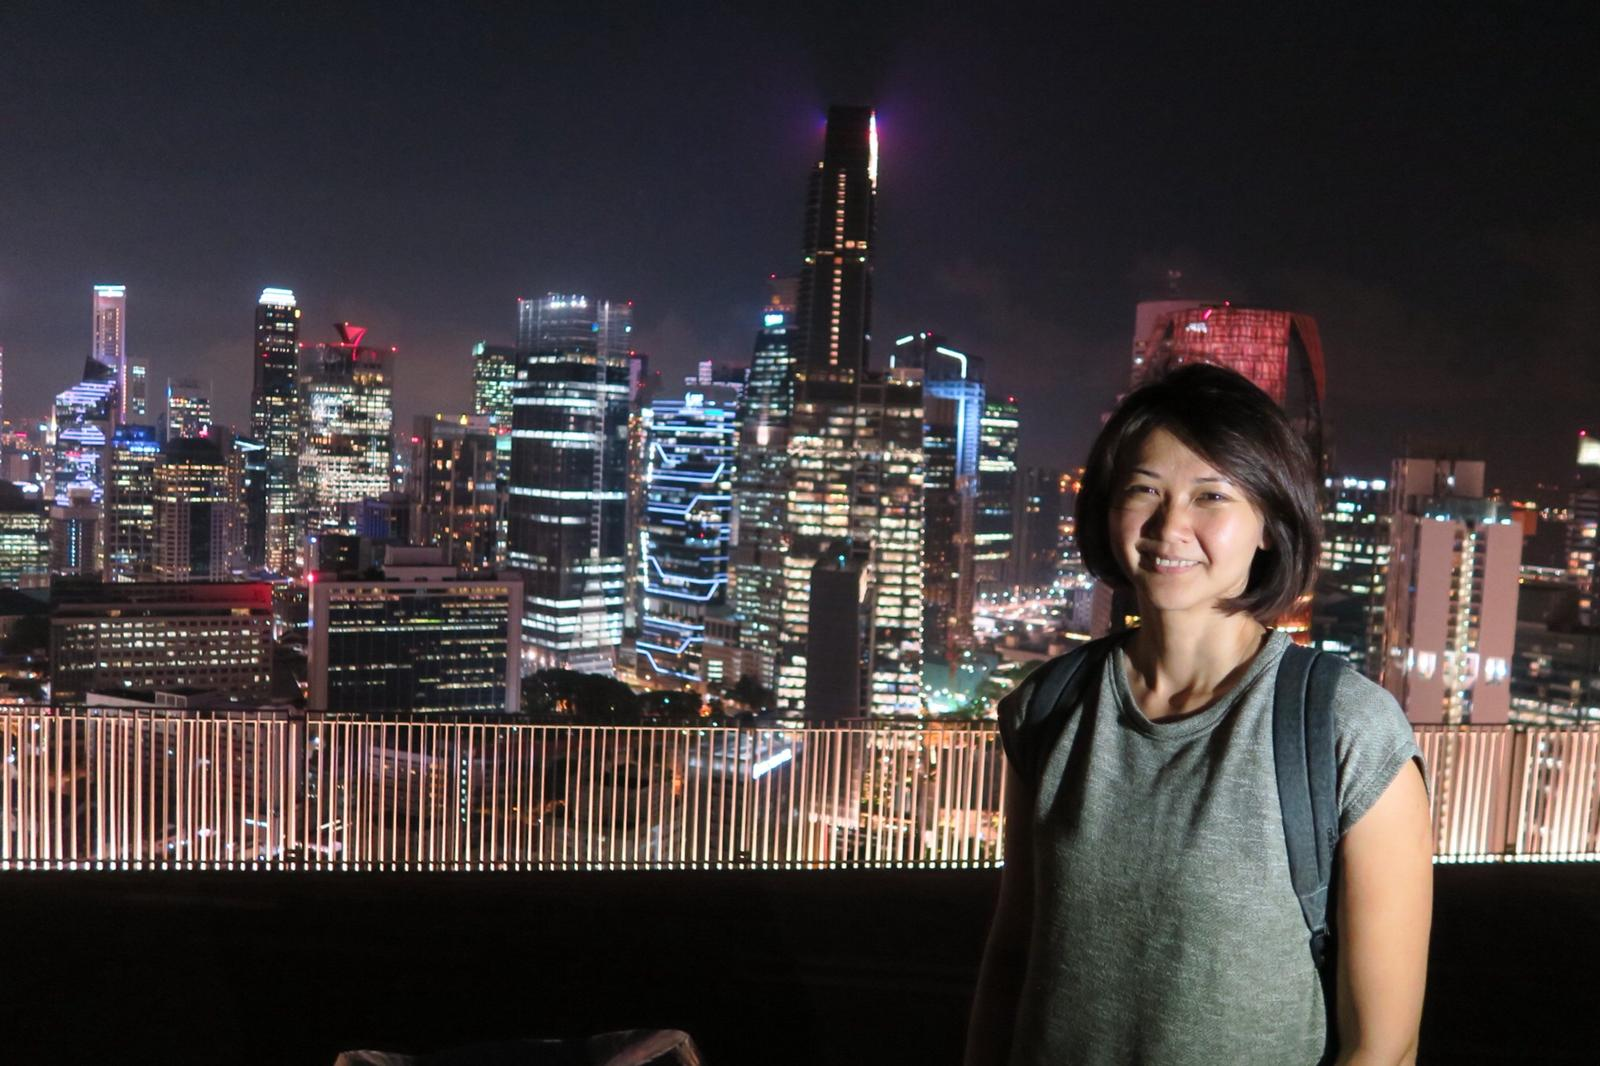 Book your night tour of Singapore now!